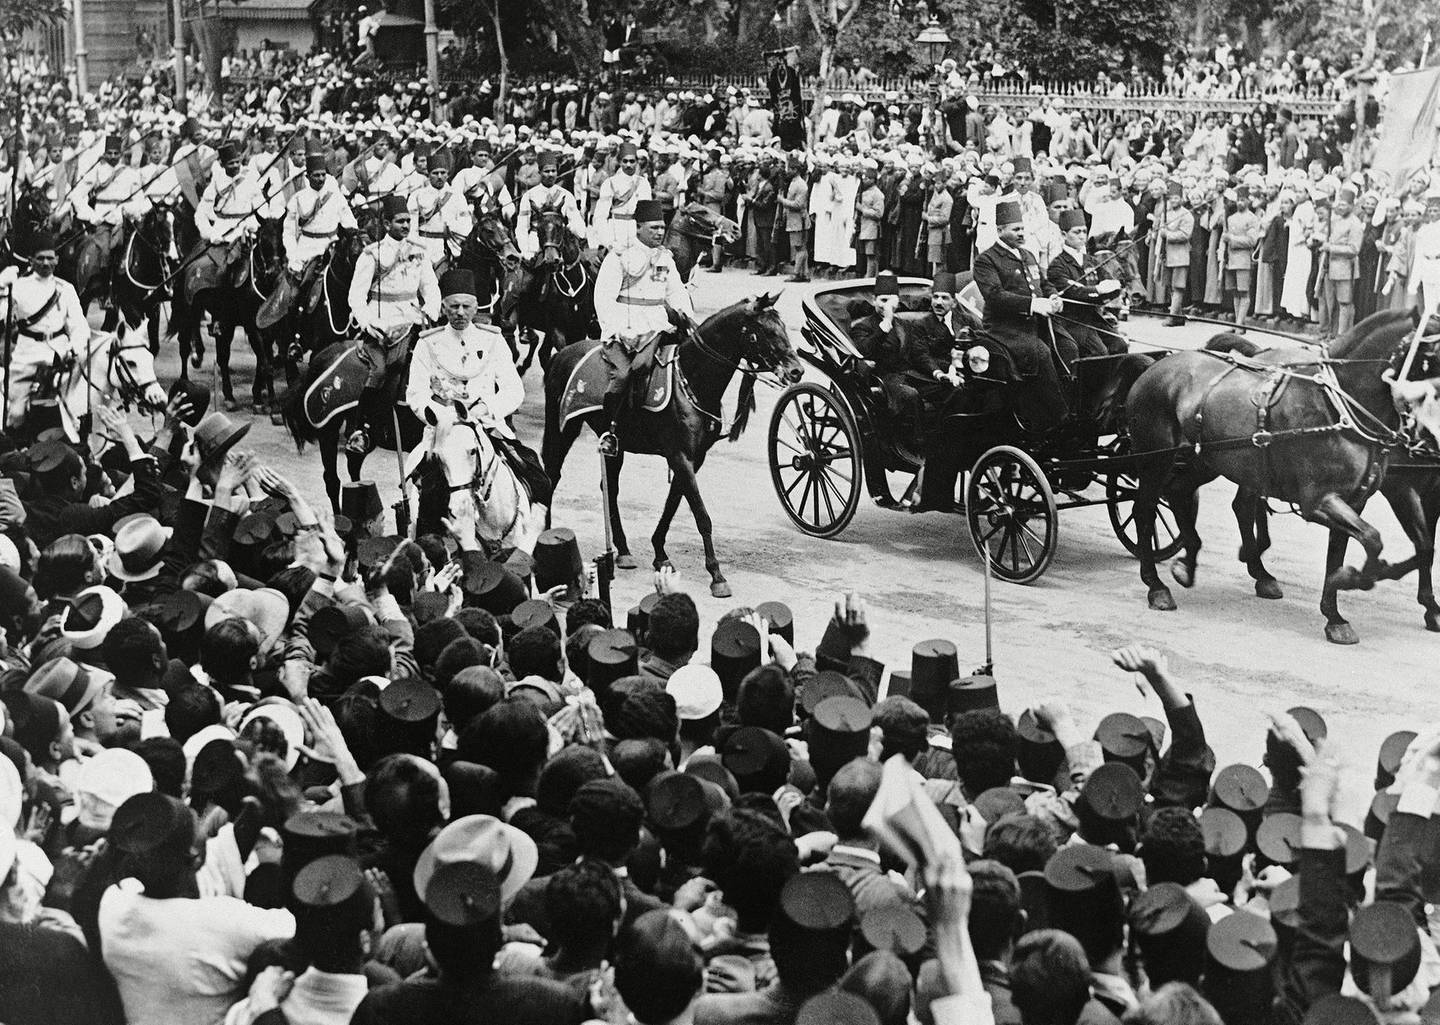 Mandatory Credit: Photo by Len Putnam/AP/Shutterstock (7395286a) Thousands lining one of Cairo's streets, Egypt cheering King Farouk seen driving with Ali Maher Pasha, who was then premier on . When Egypt's New King Farouk, returned to Cairo from England following the death of his father Fuad. The population showed their loyalty in spontaneous outbursts of rejoicing, thousands thronging the streets Egypt Arrival of King Farouk, Cairo, Egypt